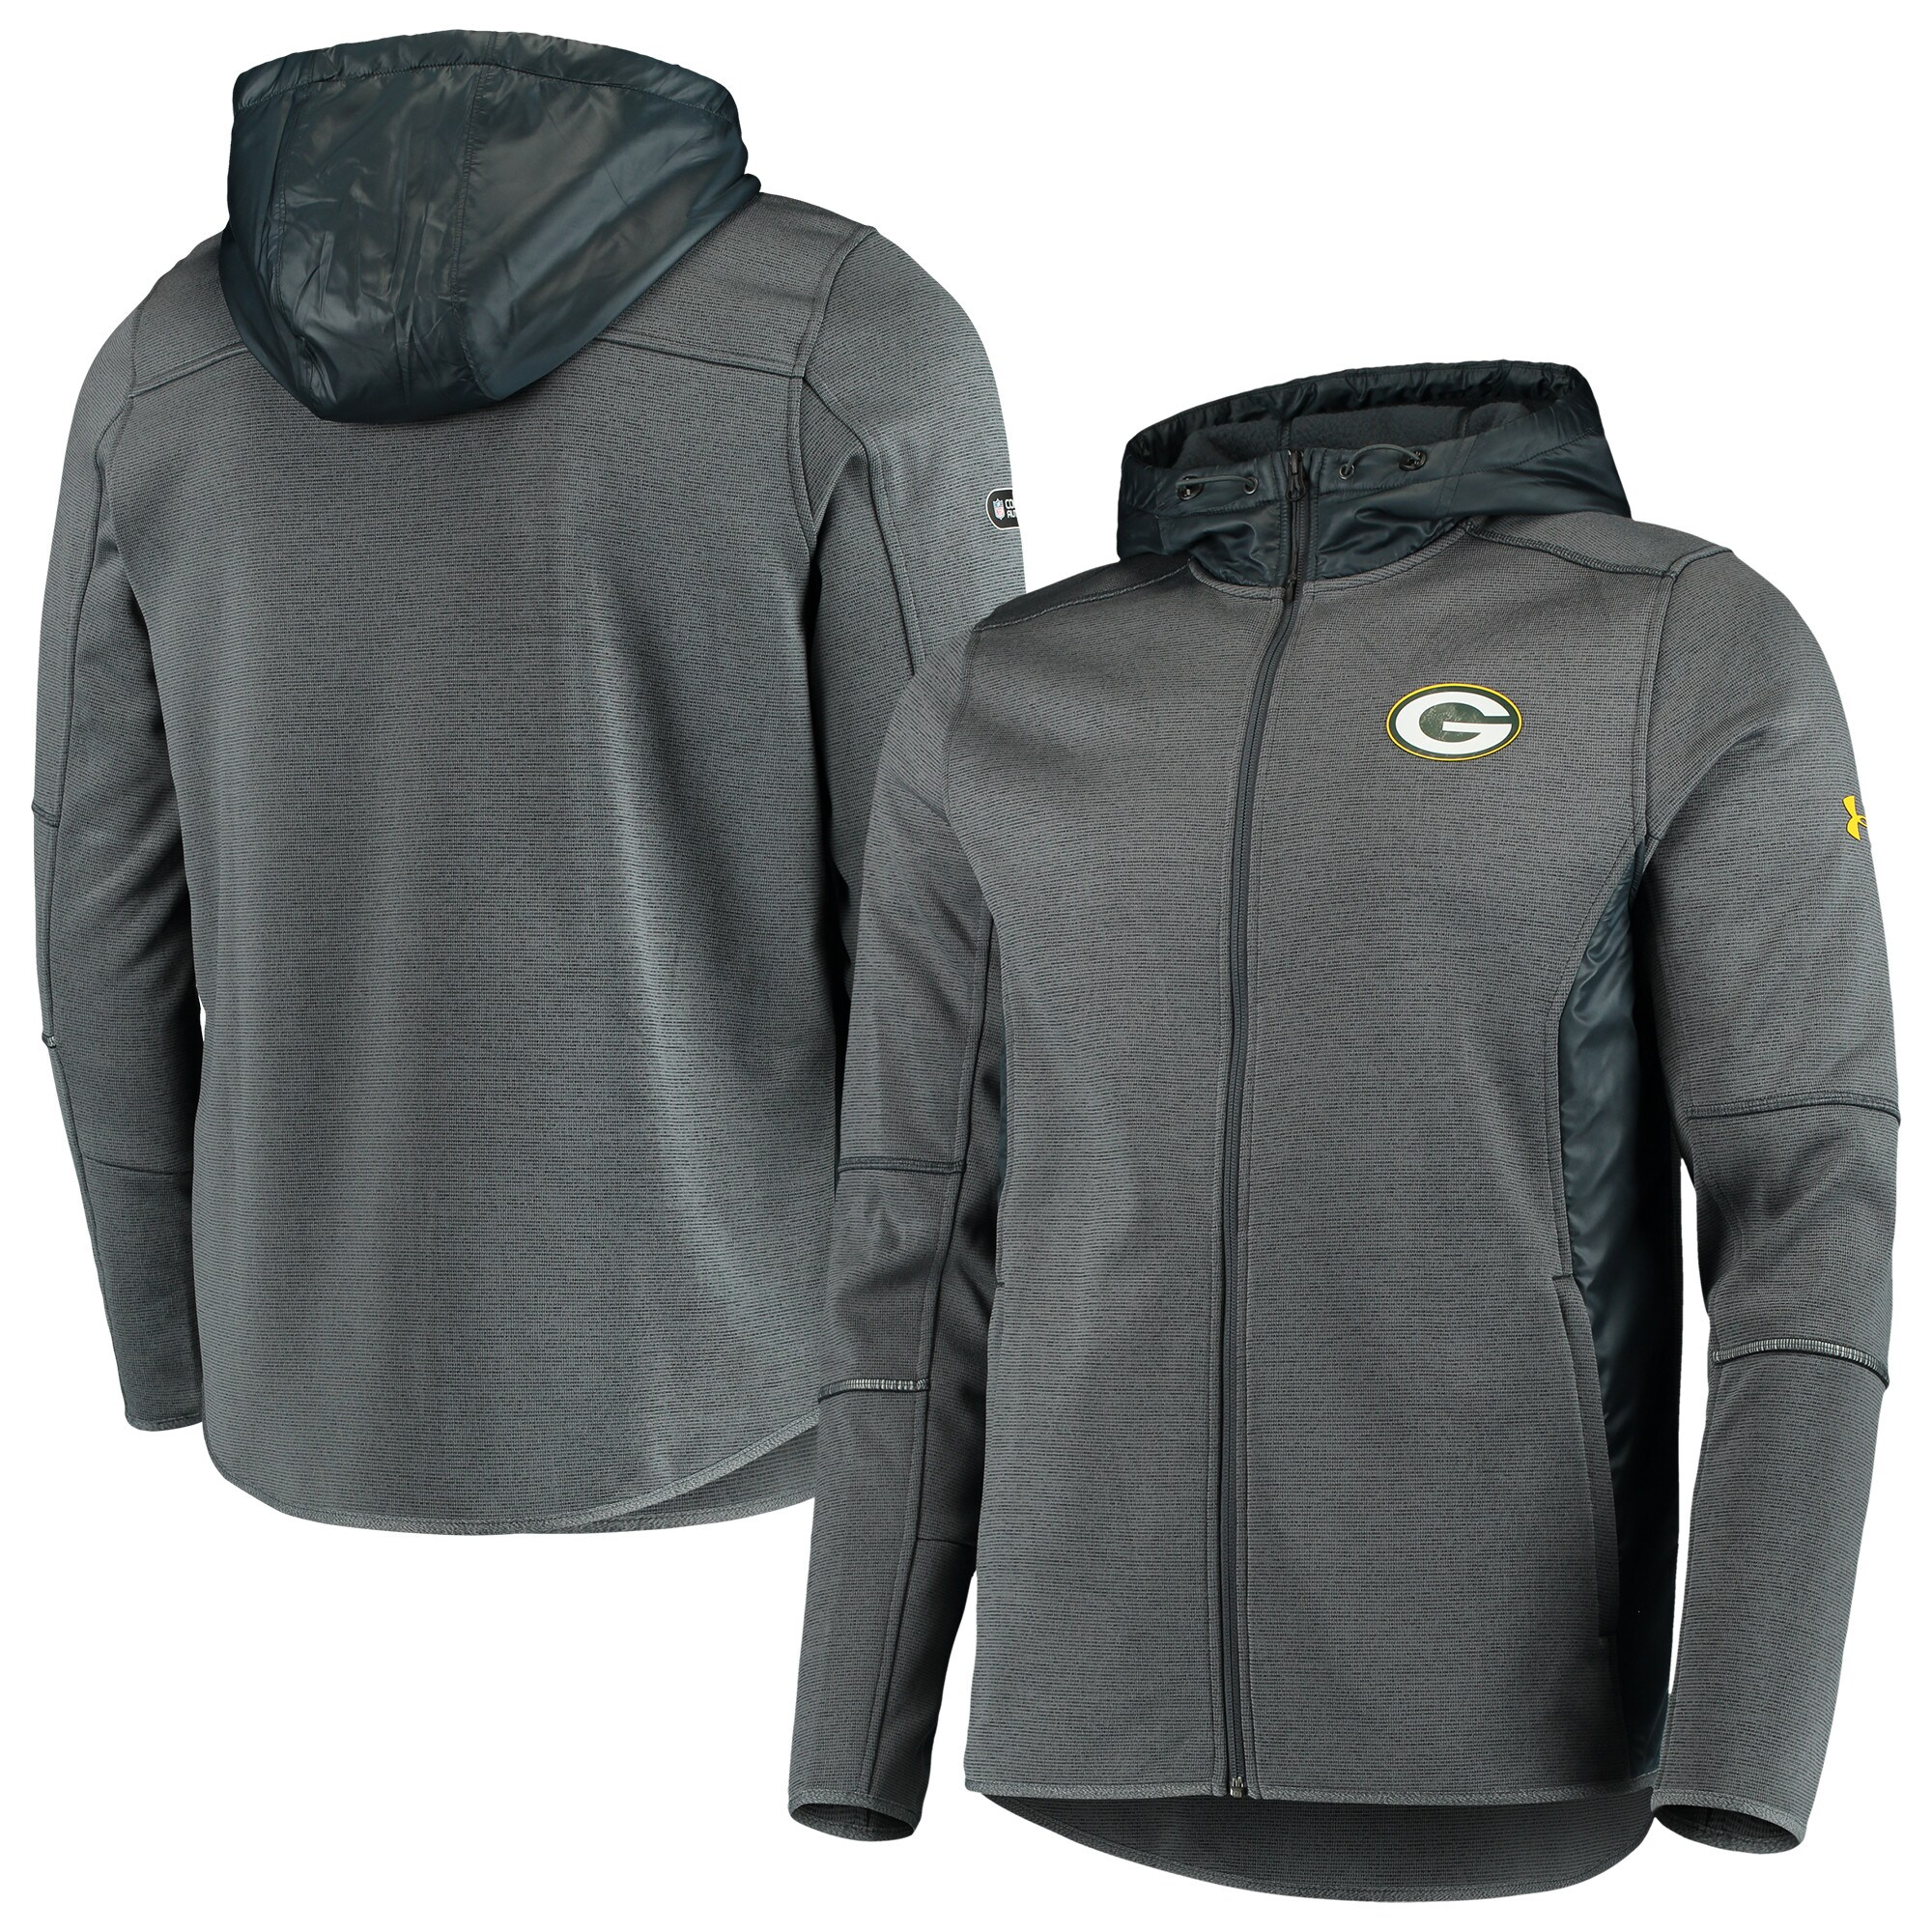 Green Bay Packers Under Armour Combine Authentic Full-Zip Swacket - Charcoal